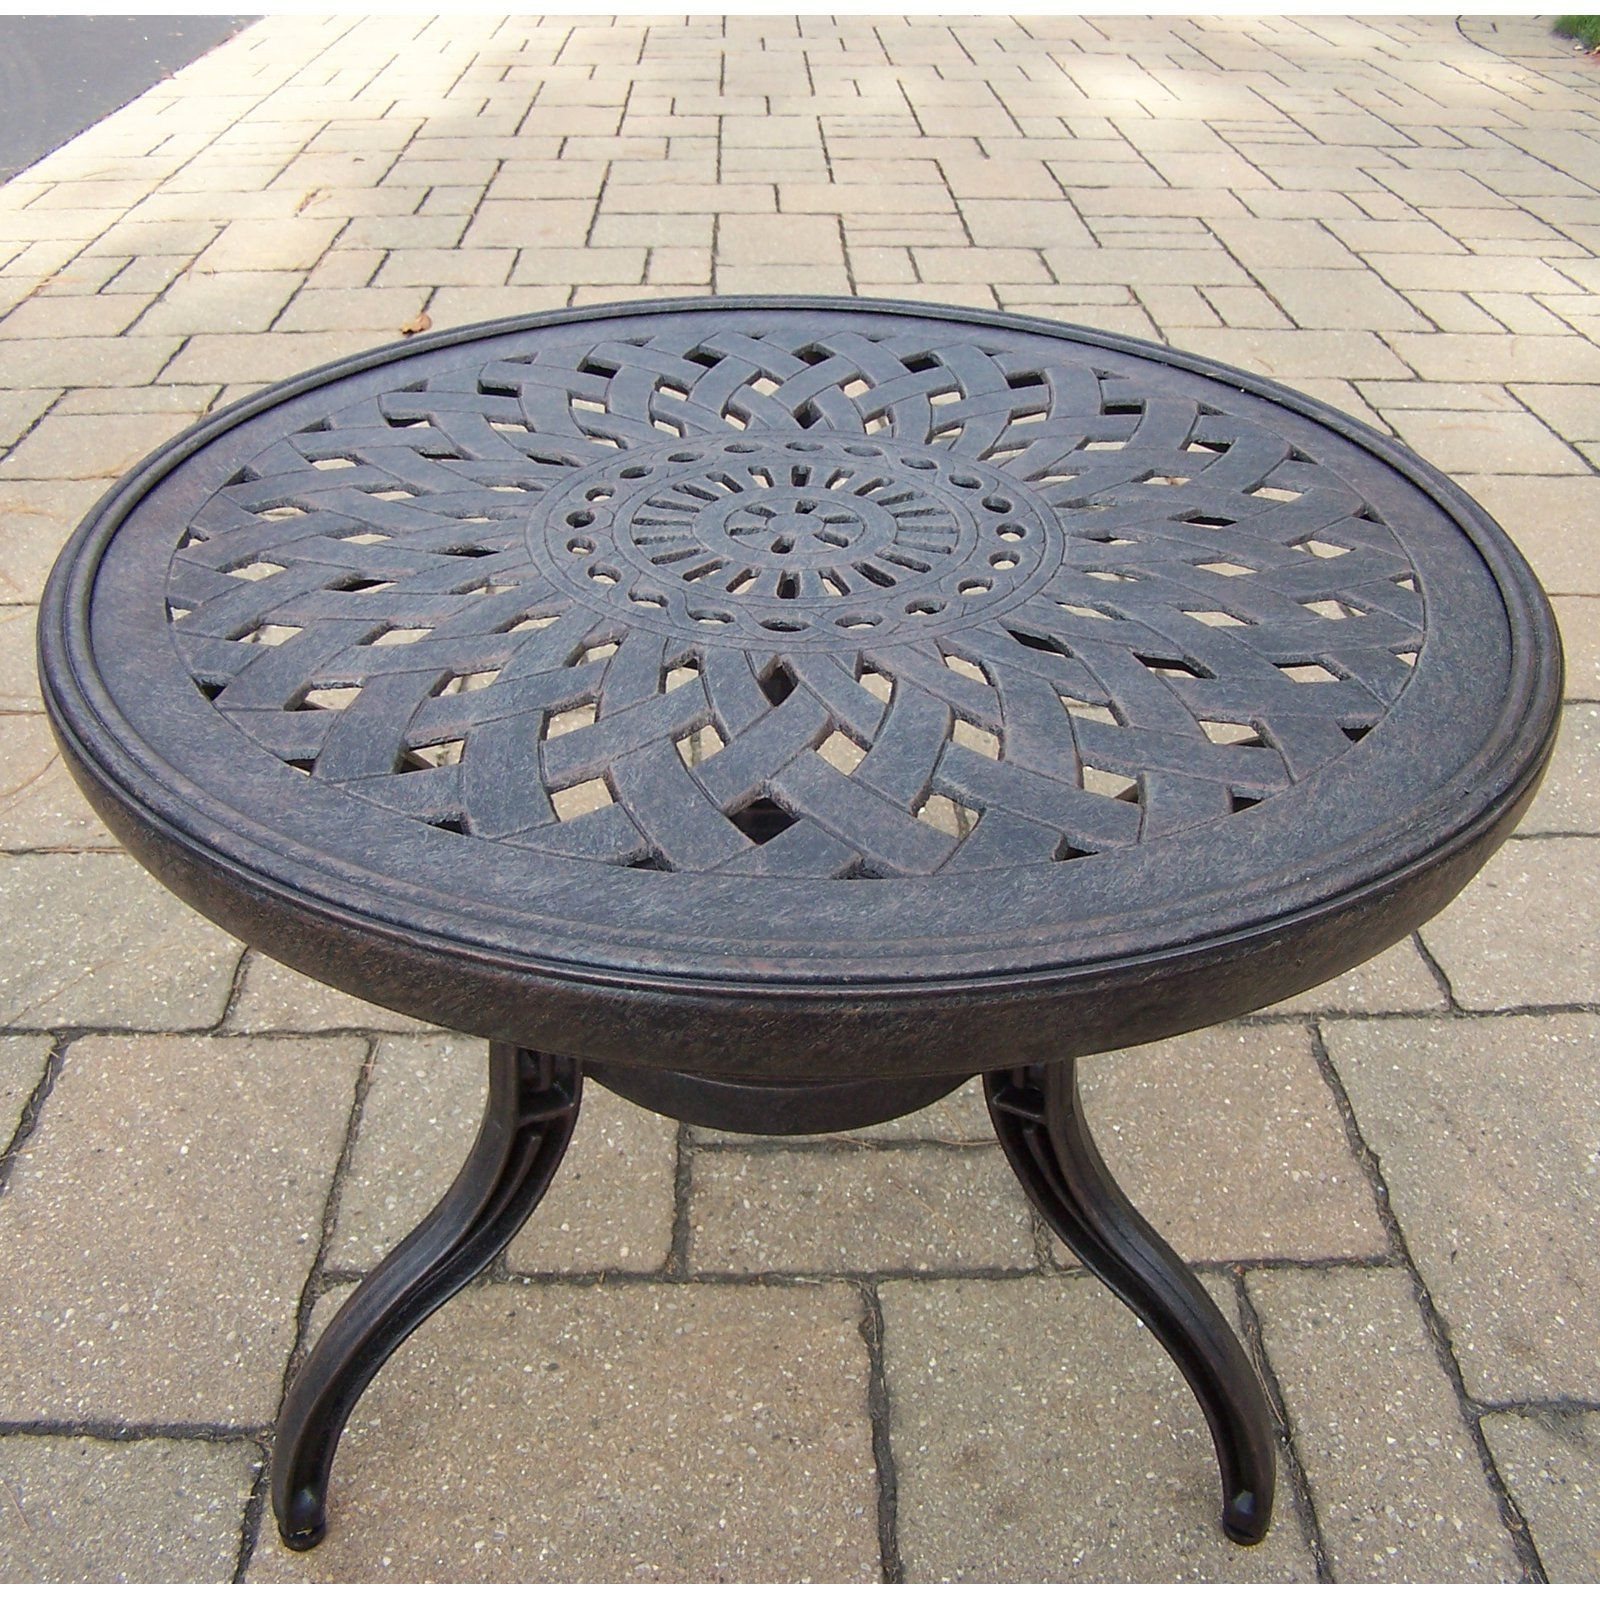 oakland living belmont round patio side table from zaltana mosaic outdoor accent mid century modern console target wood bench rattan glass top blue lamps bedroom victorian coffee